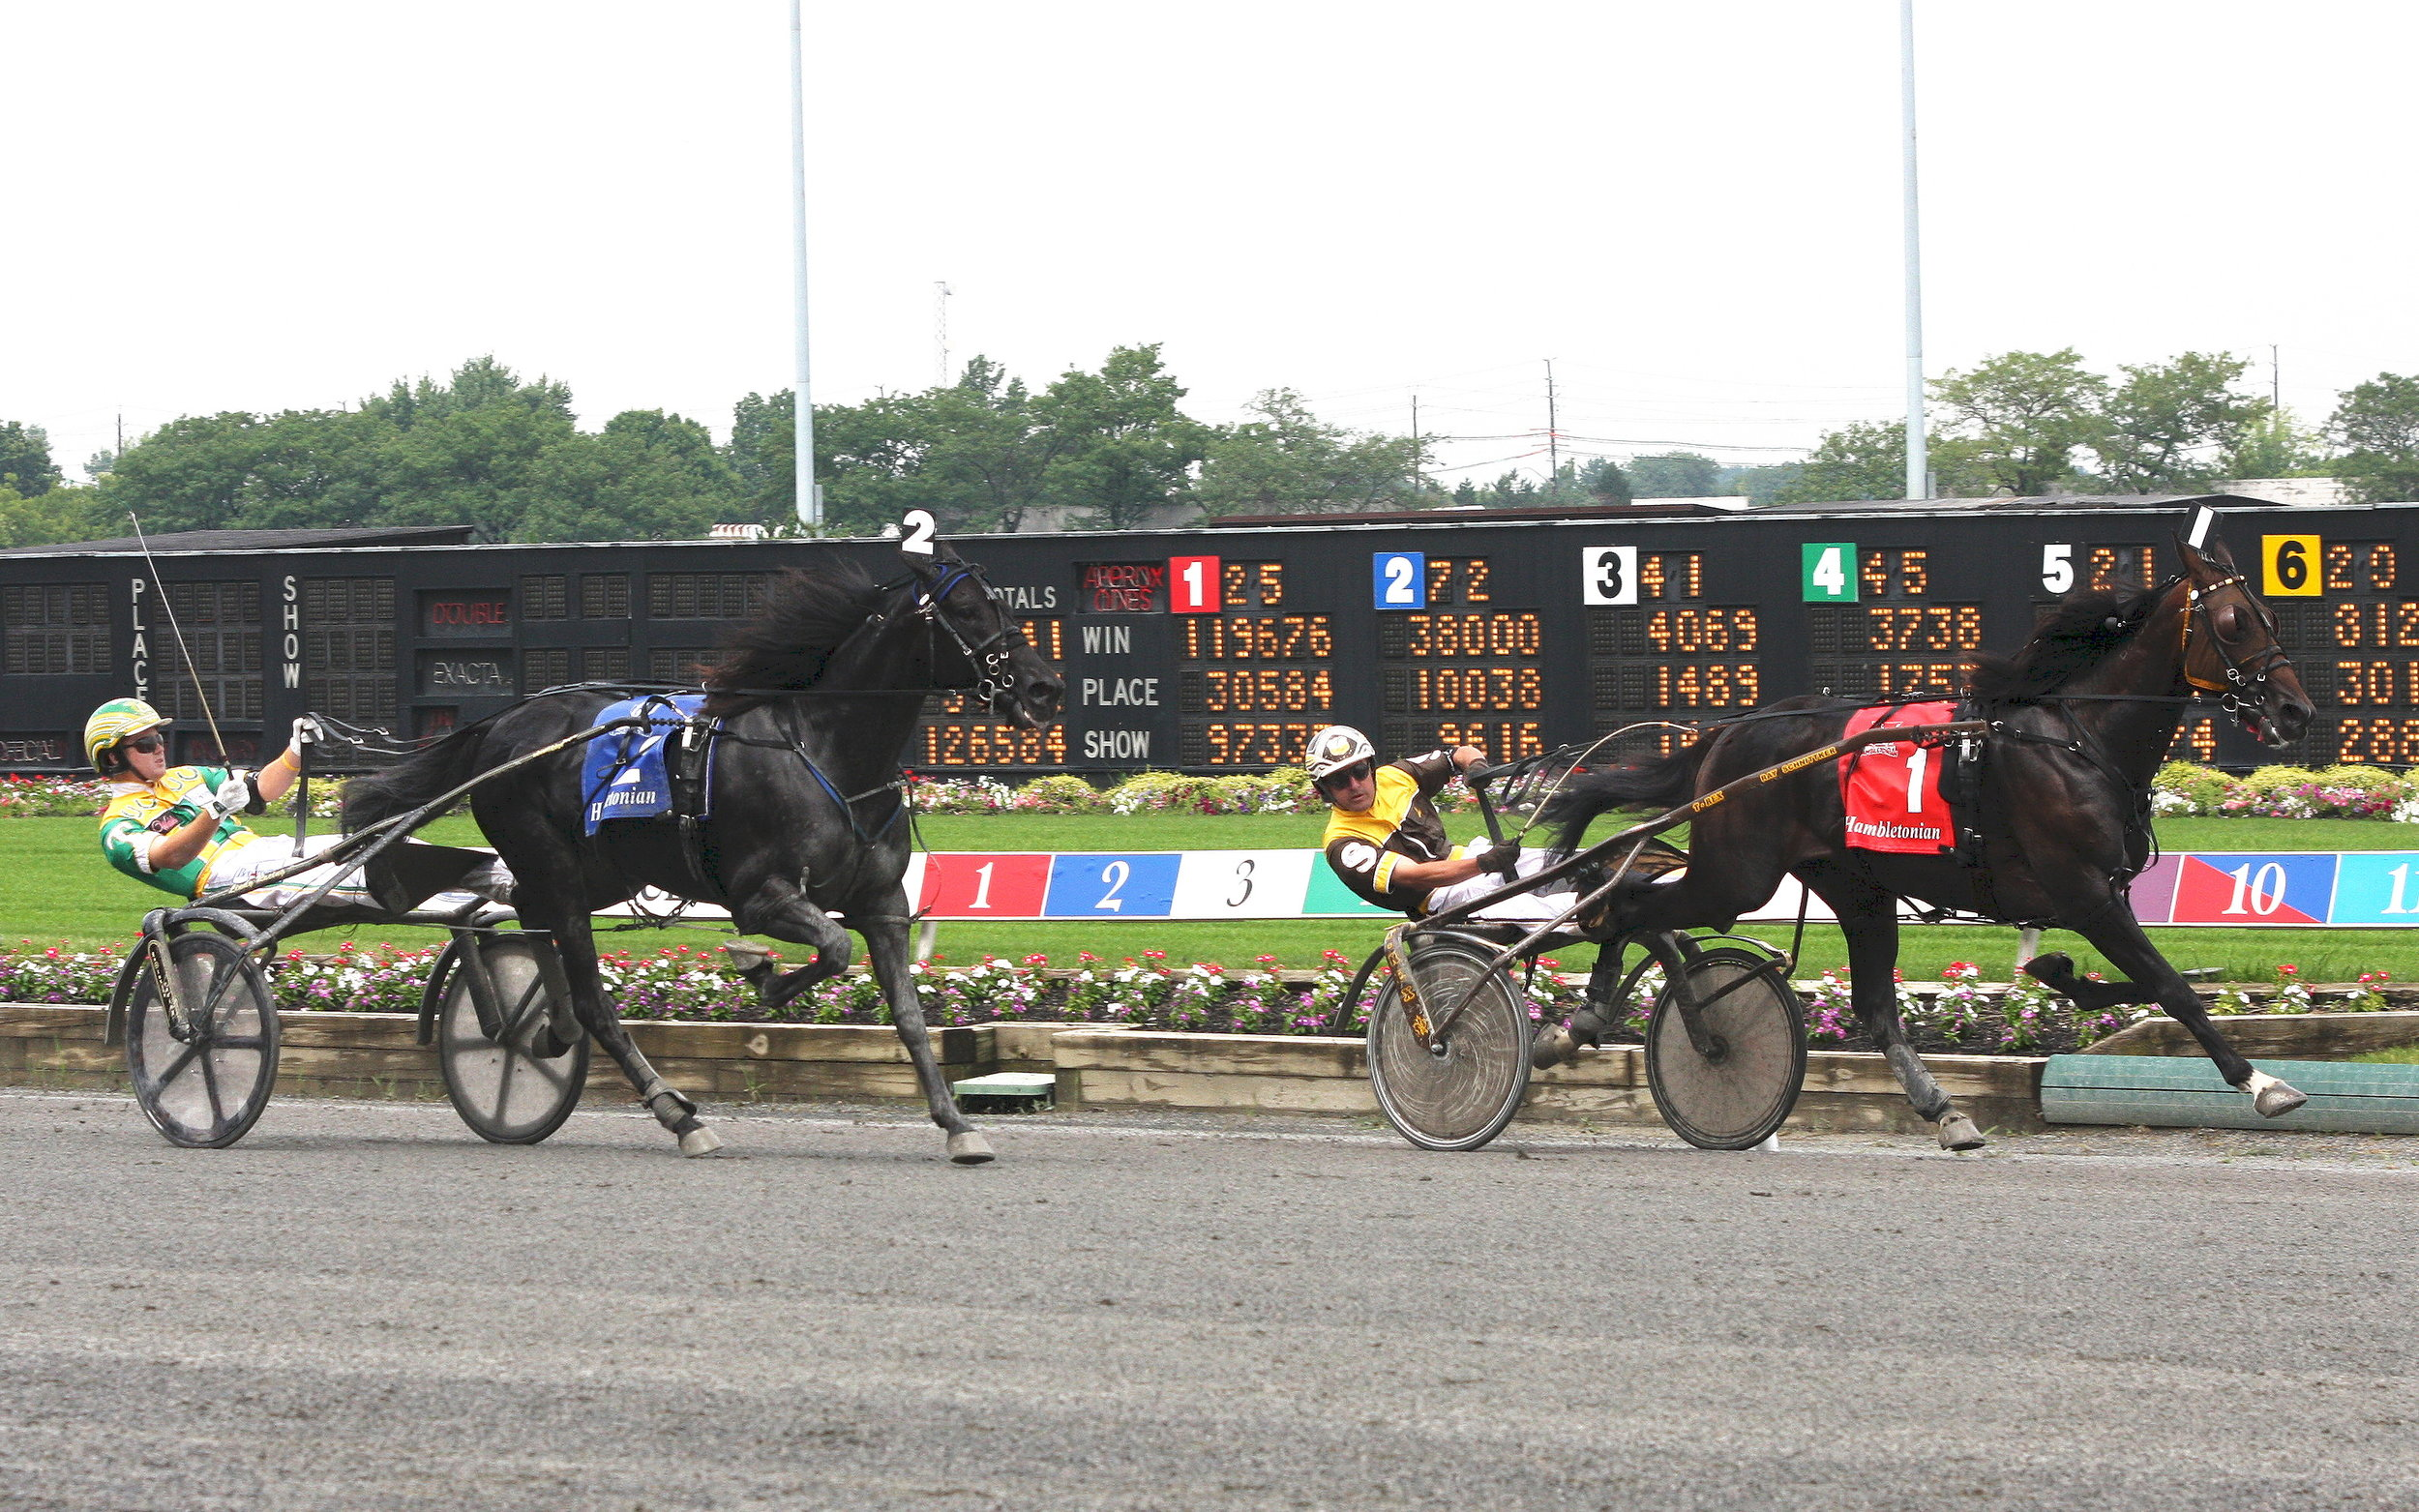 8-2-08 M1 Hambletonian 336 race (3).jpg